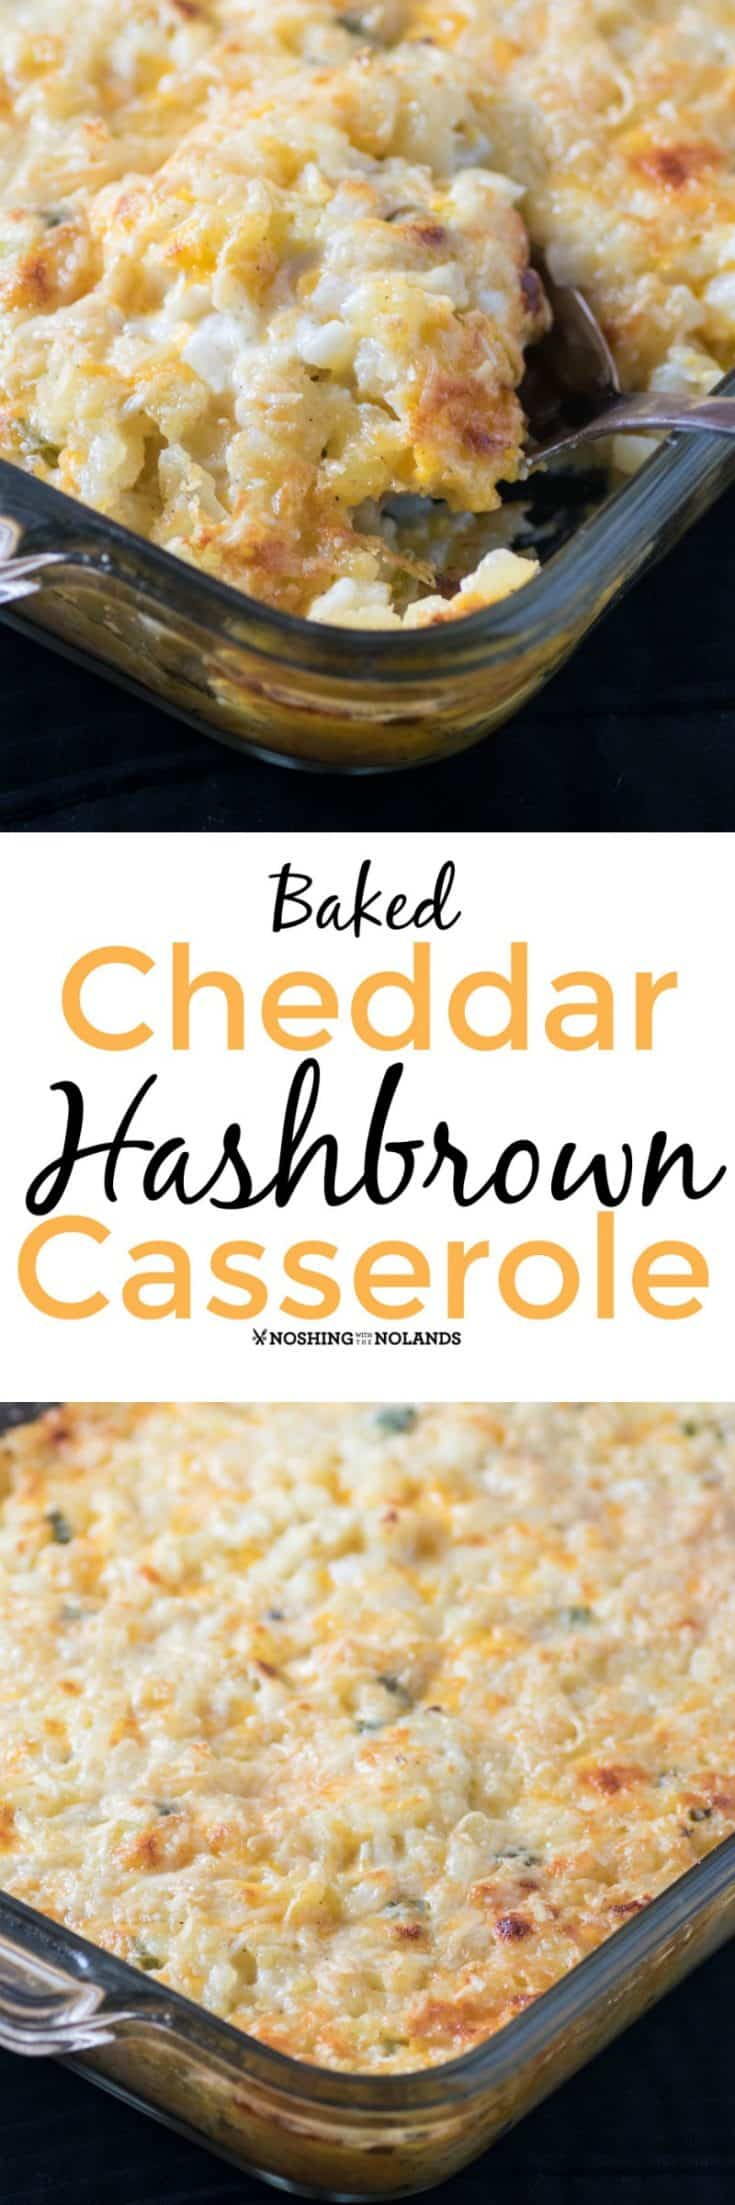 Baked Cheddar Hash Brown Casserole is great breakfast casserole that can be served at any time of the day. Frozen hash browns make a quick and easy side dish that everyone will love! #hashbrowns #casserole